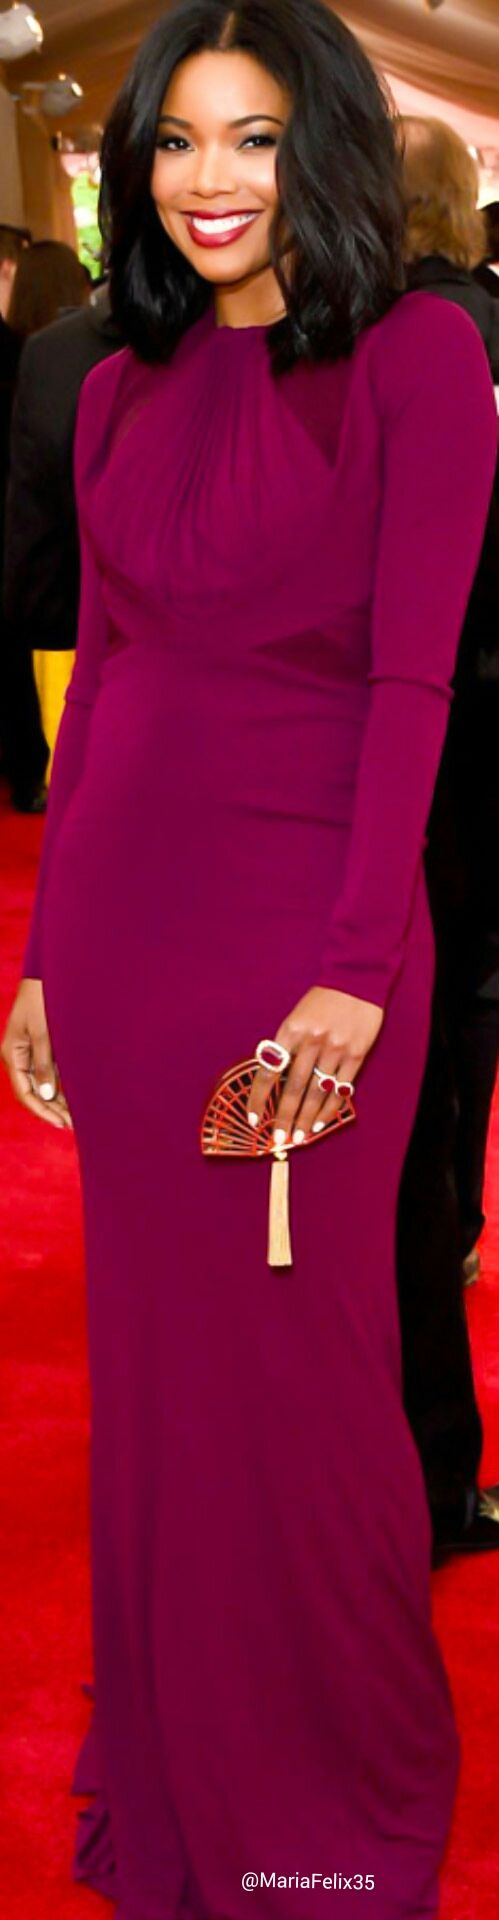 Gabrielle Union in Zac Posen at The Met Gala Red Carpet 2015